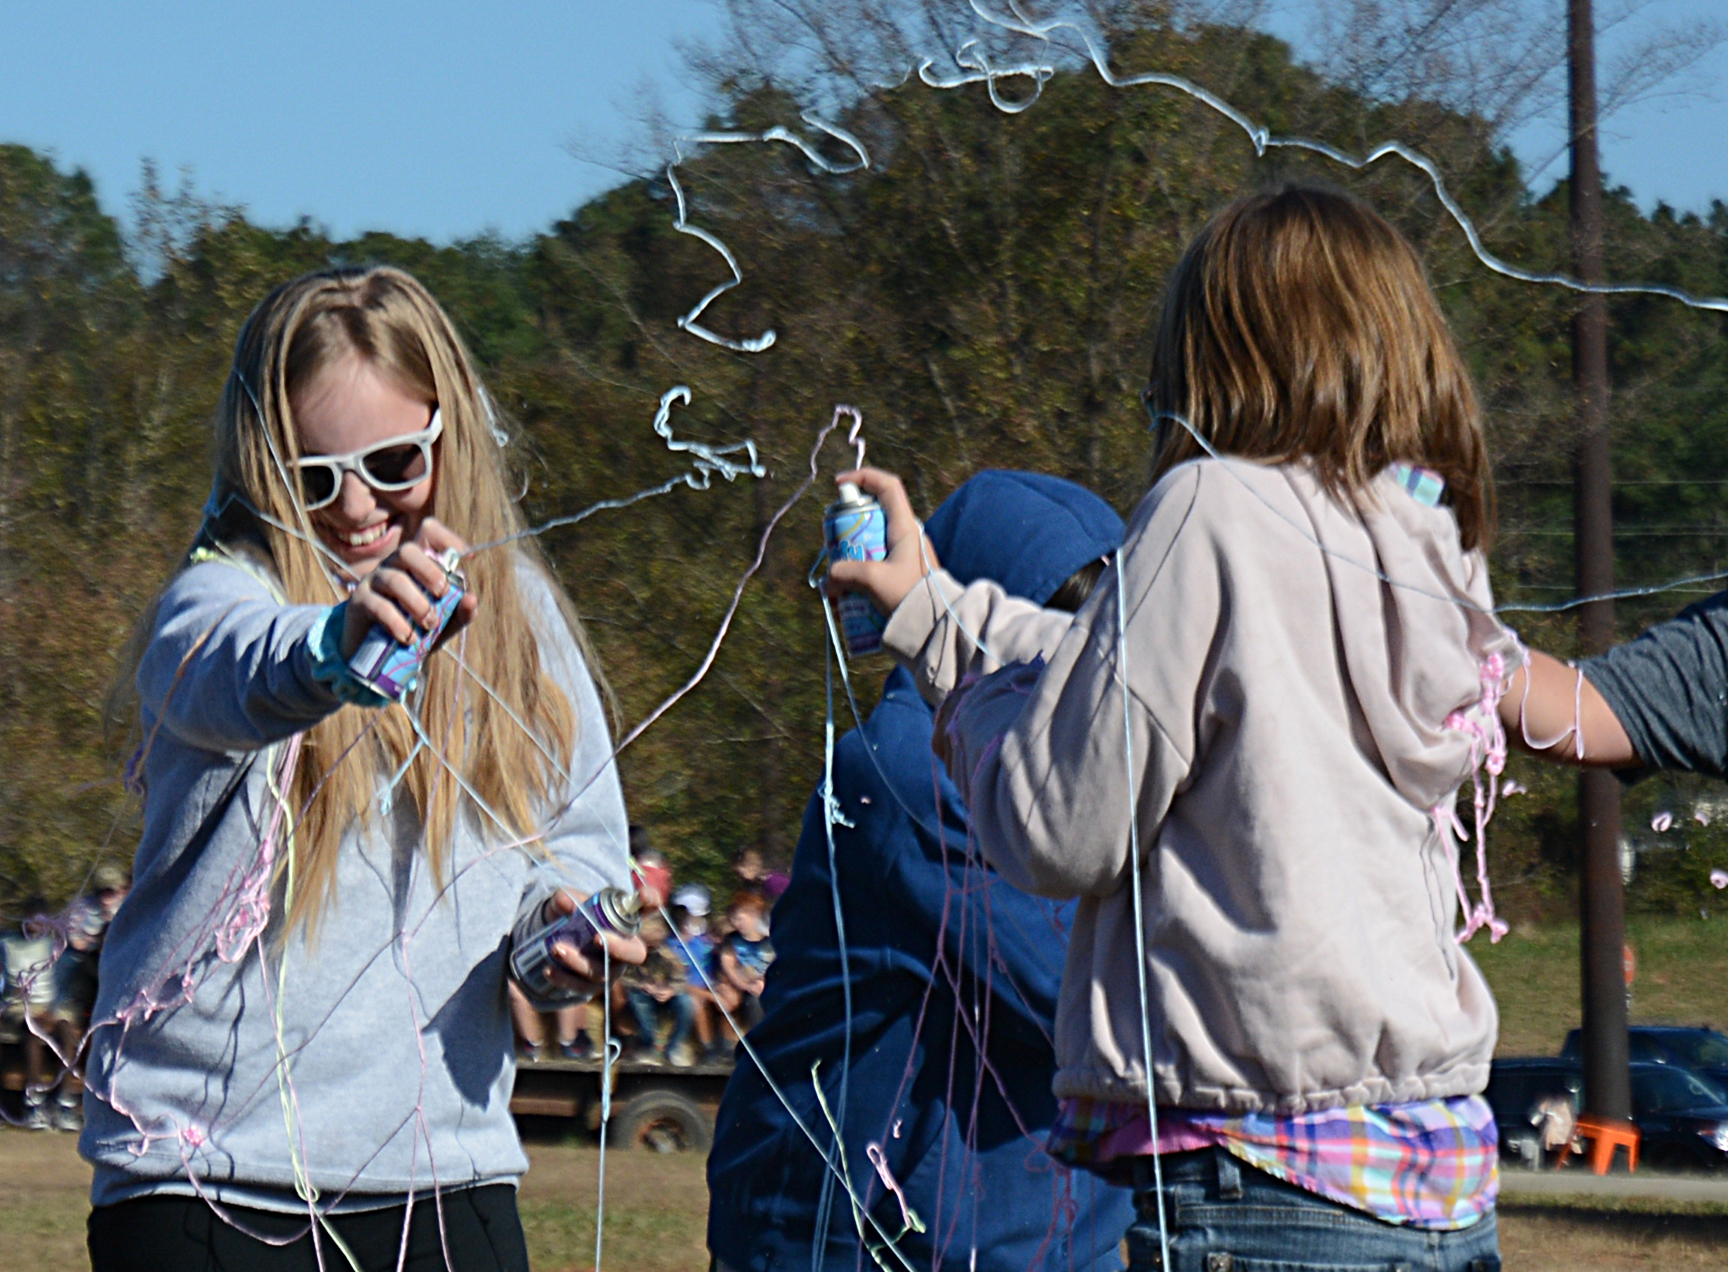 Brooklyn Vassar, left, and Mia Dancause, right, both fifth-graders, duel with cans of silly string during the Silly String Club Day activity.